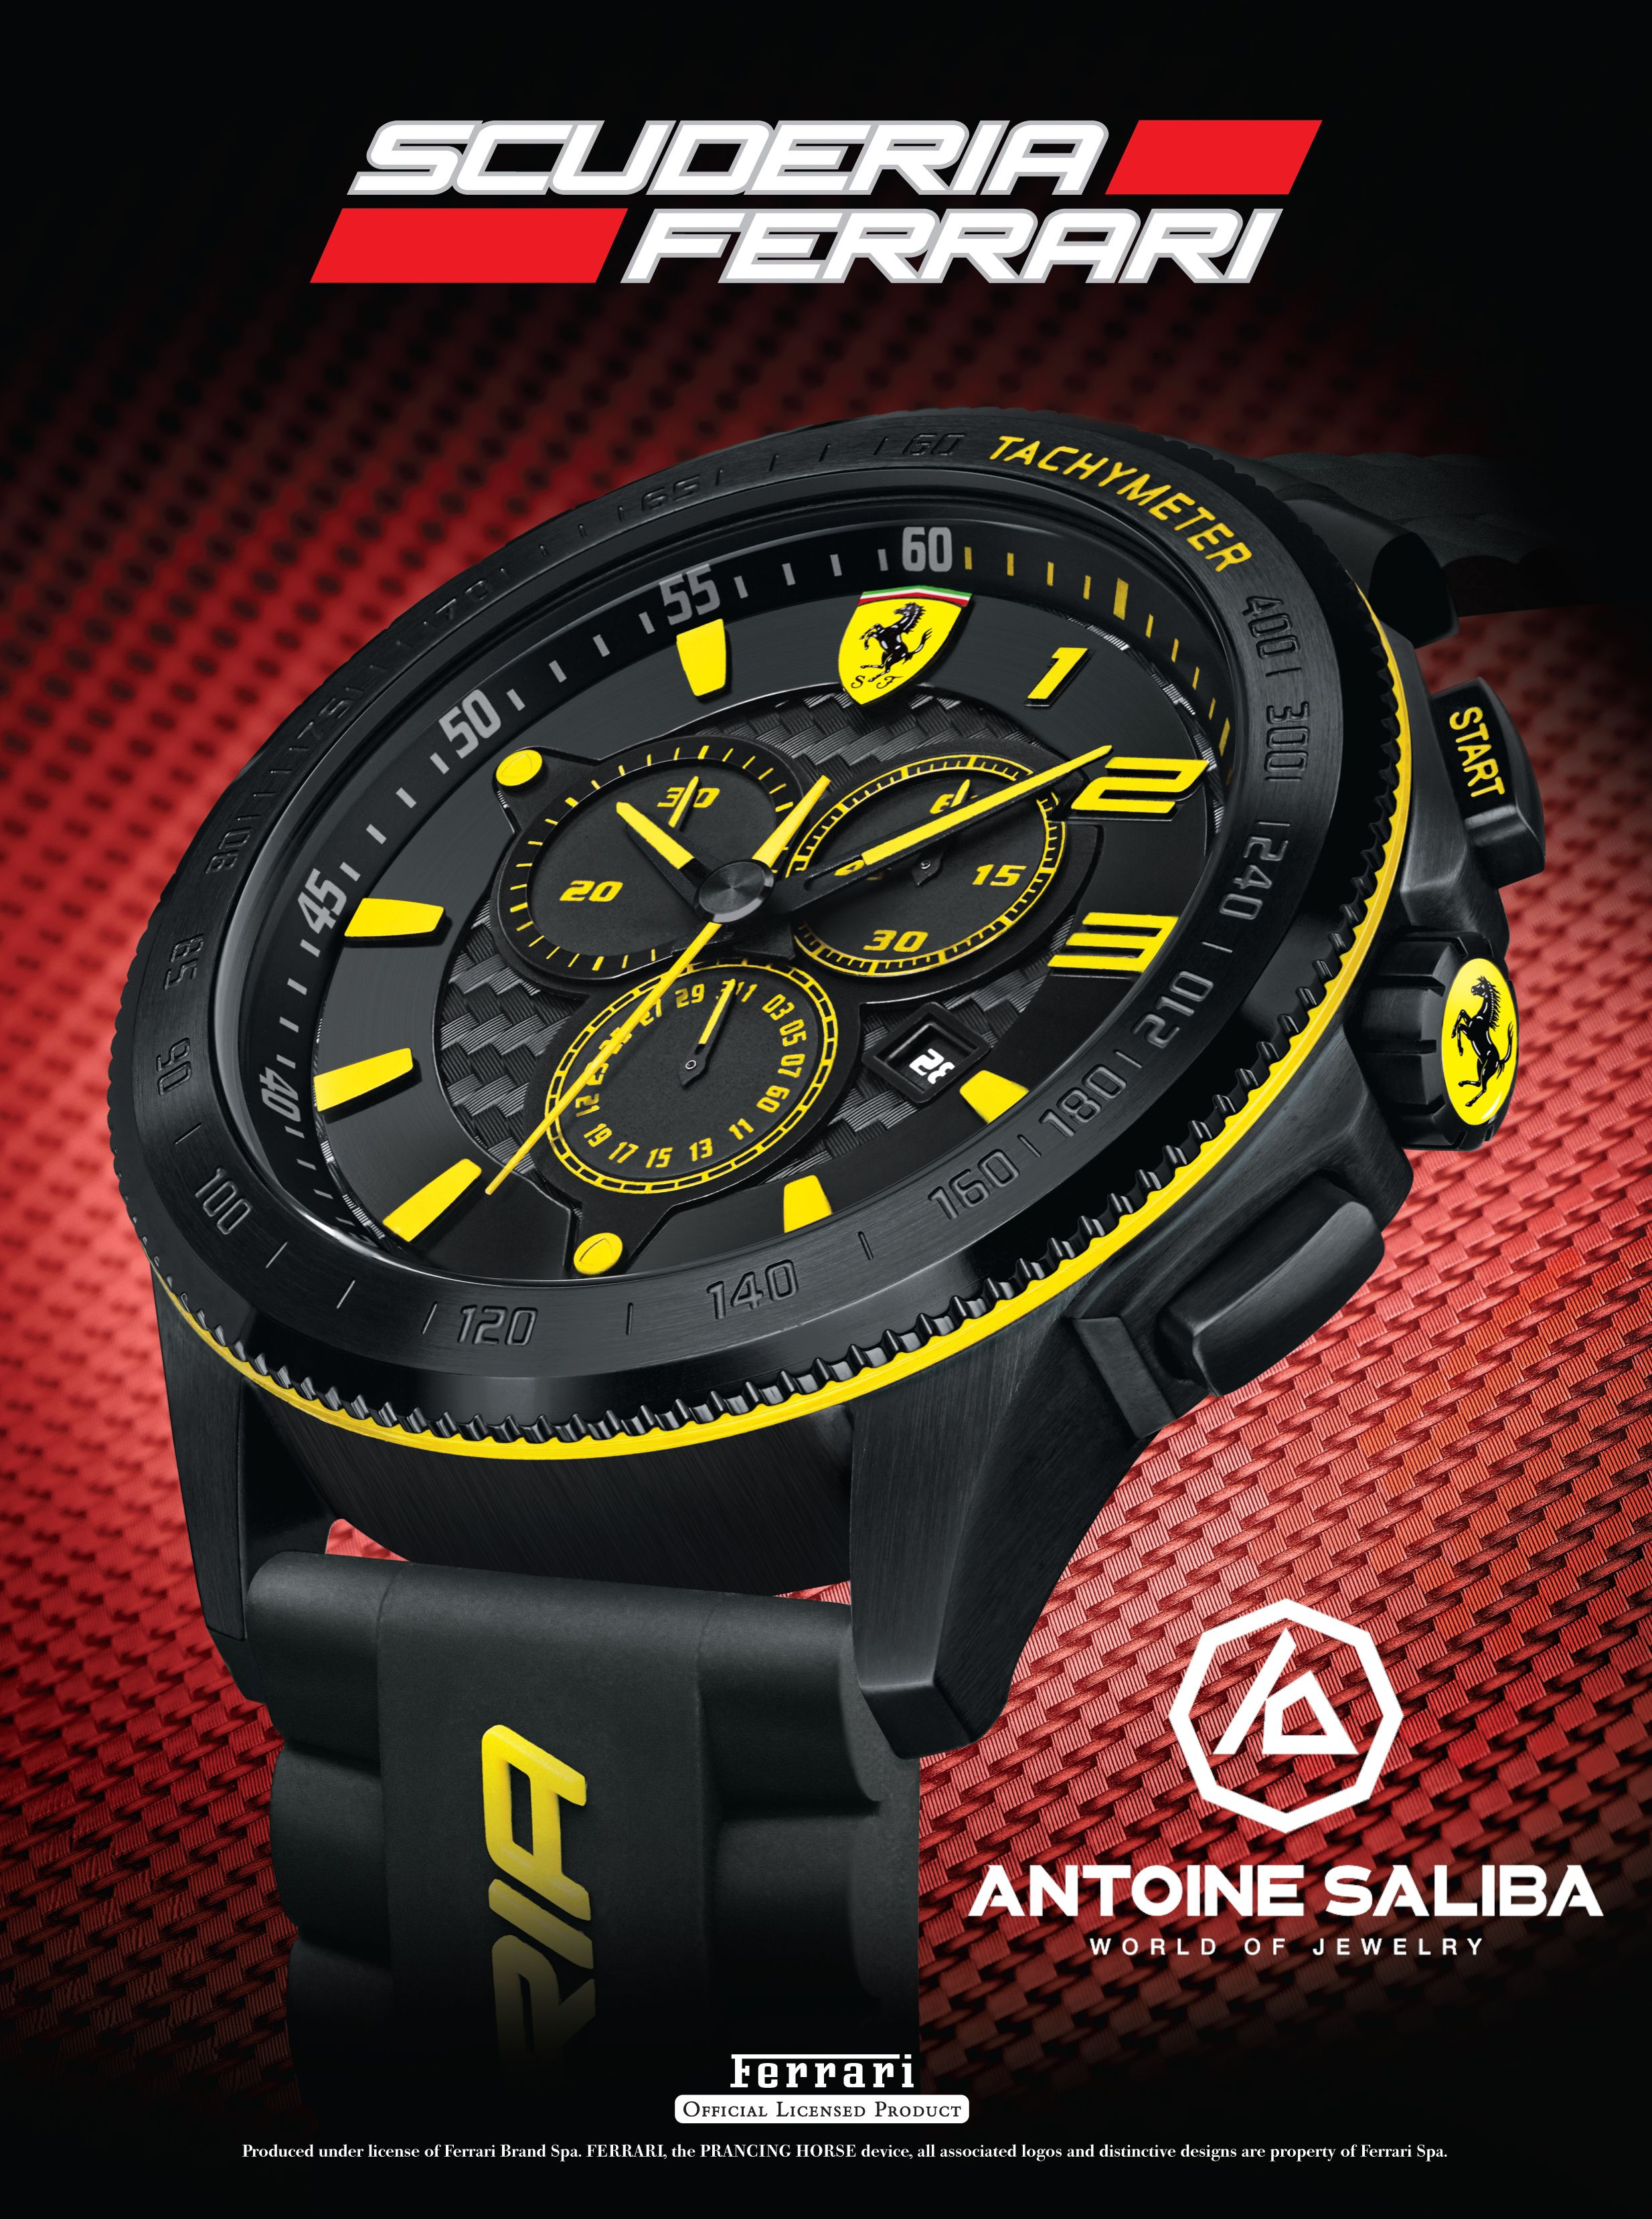 pl en store ferrari online s f pilota watches men watch scuderia official